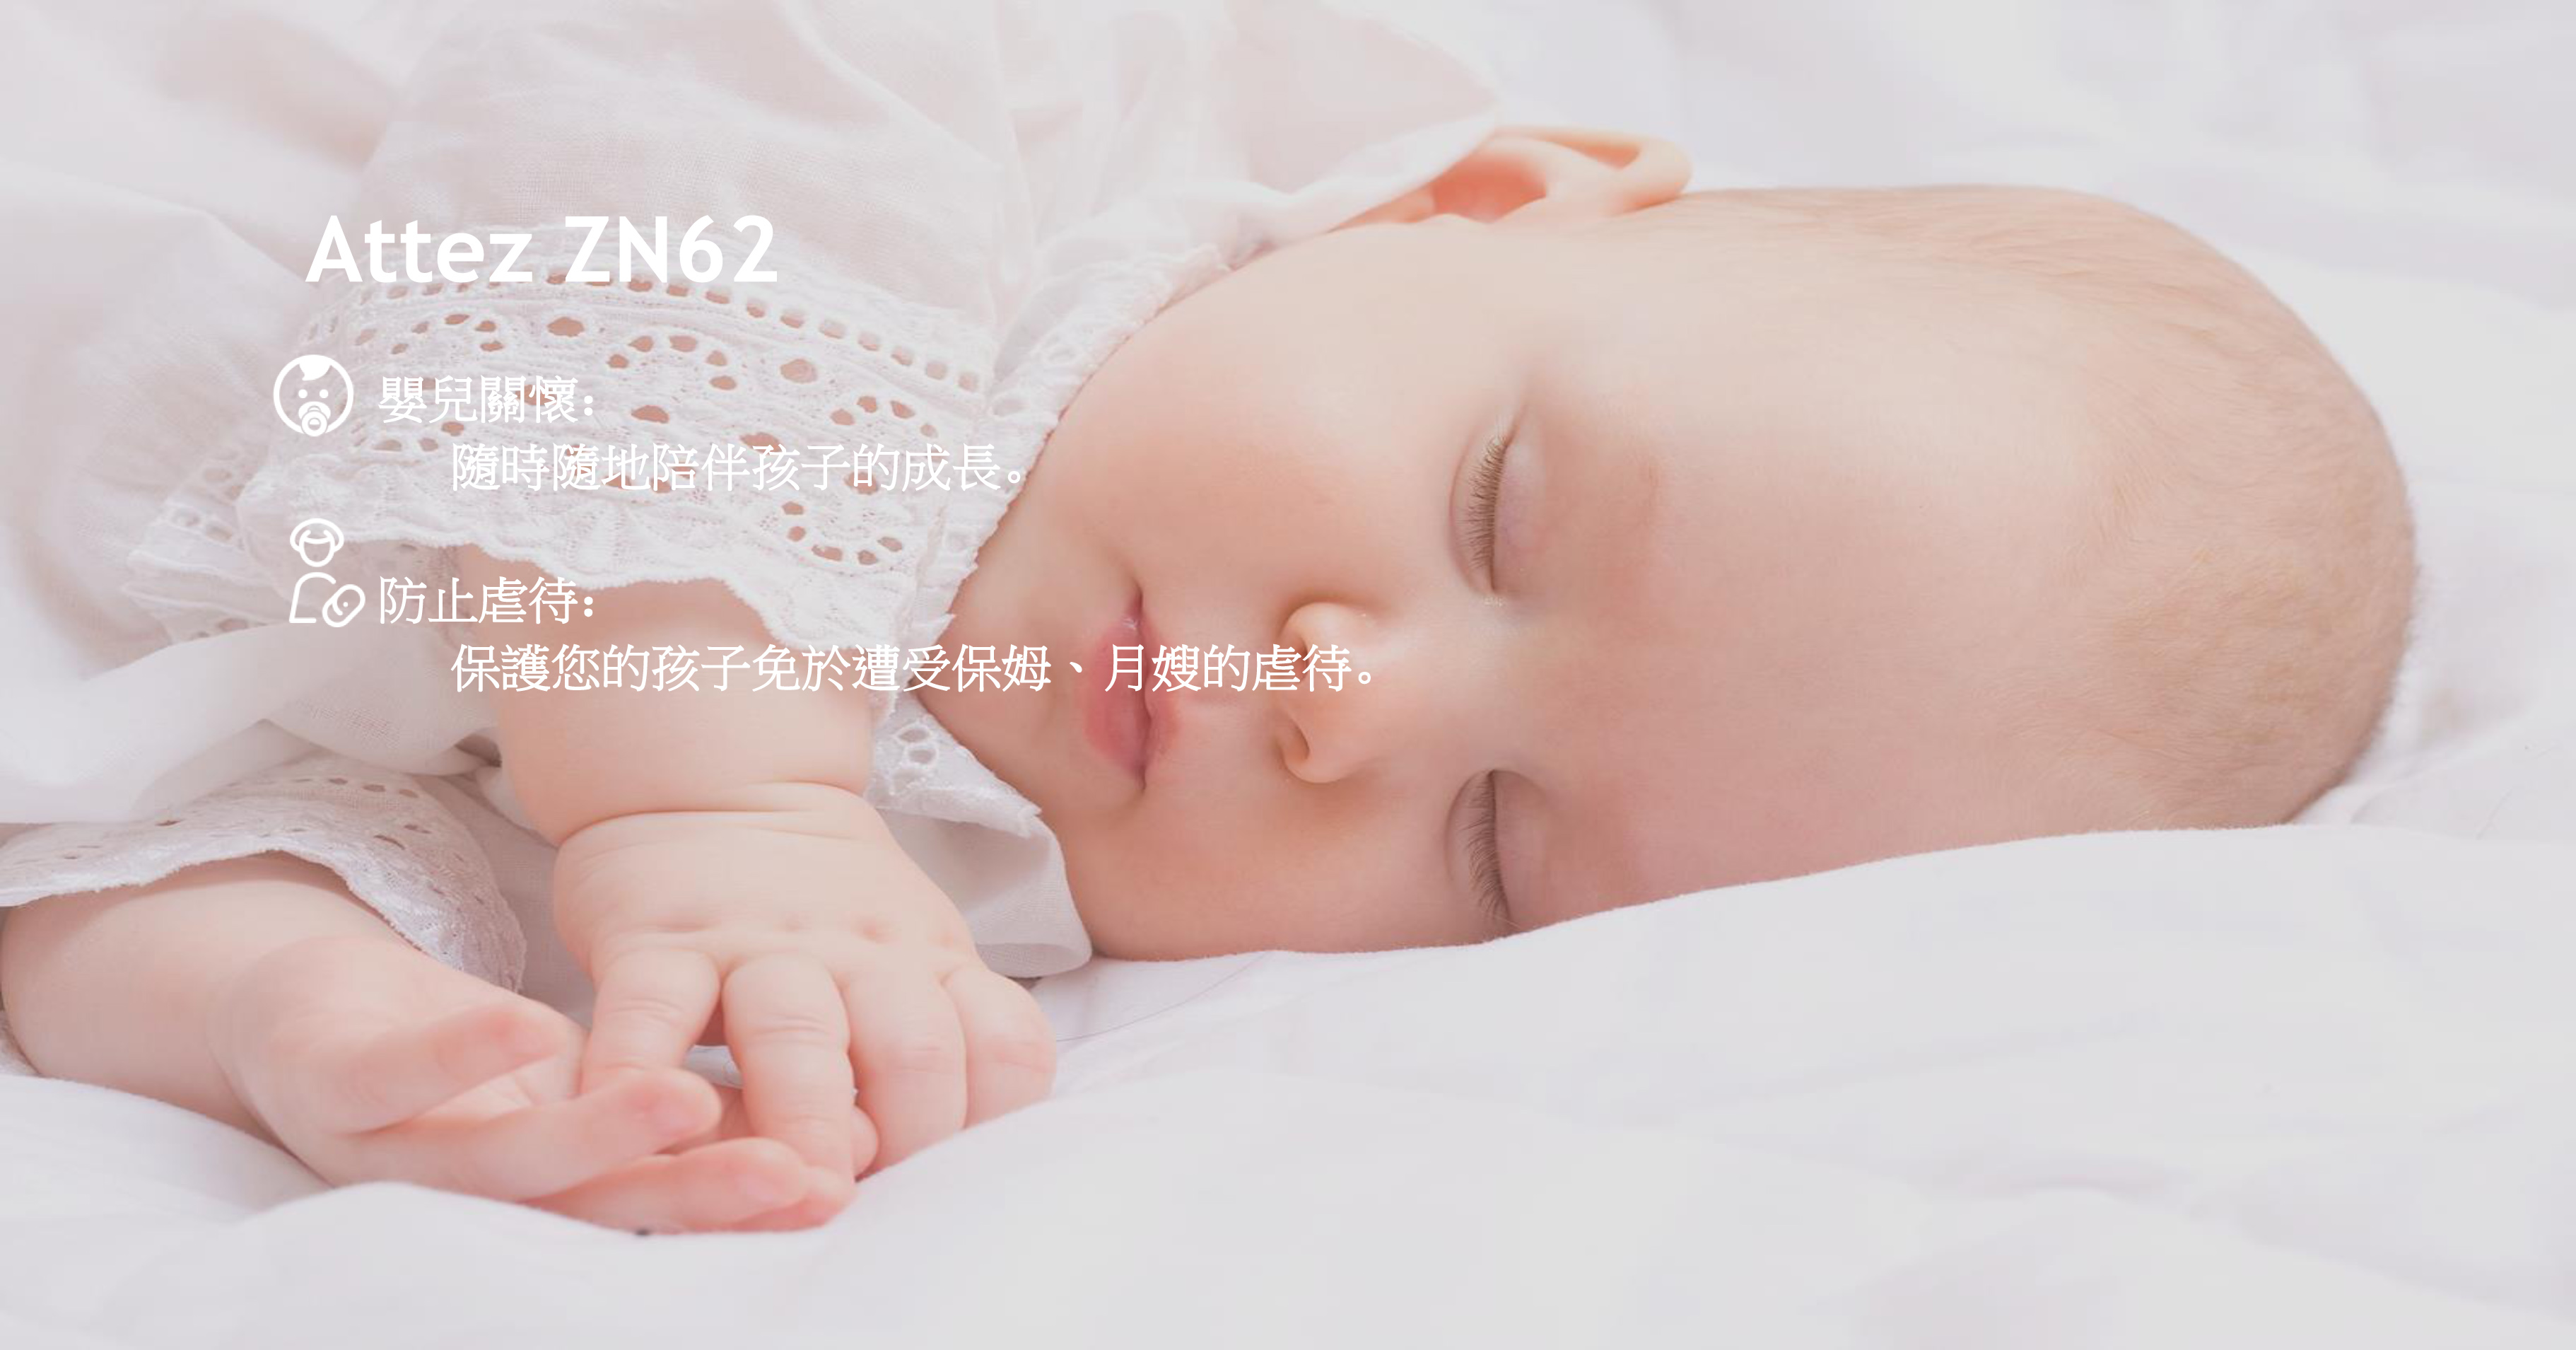 zn62webpage2 2 baby